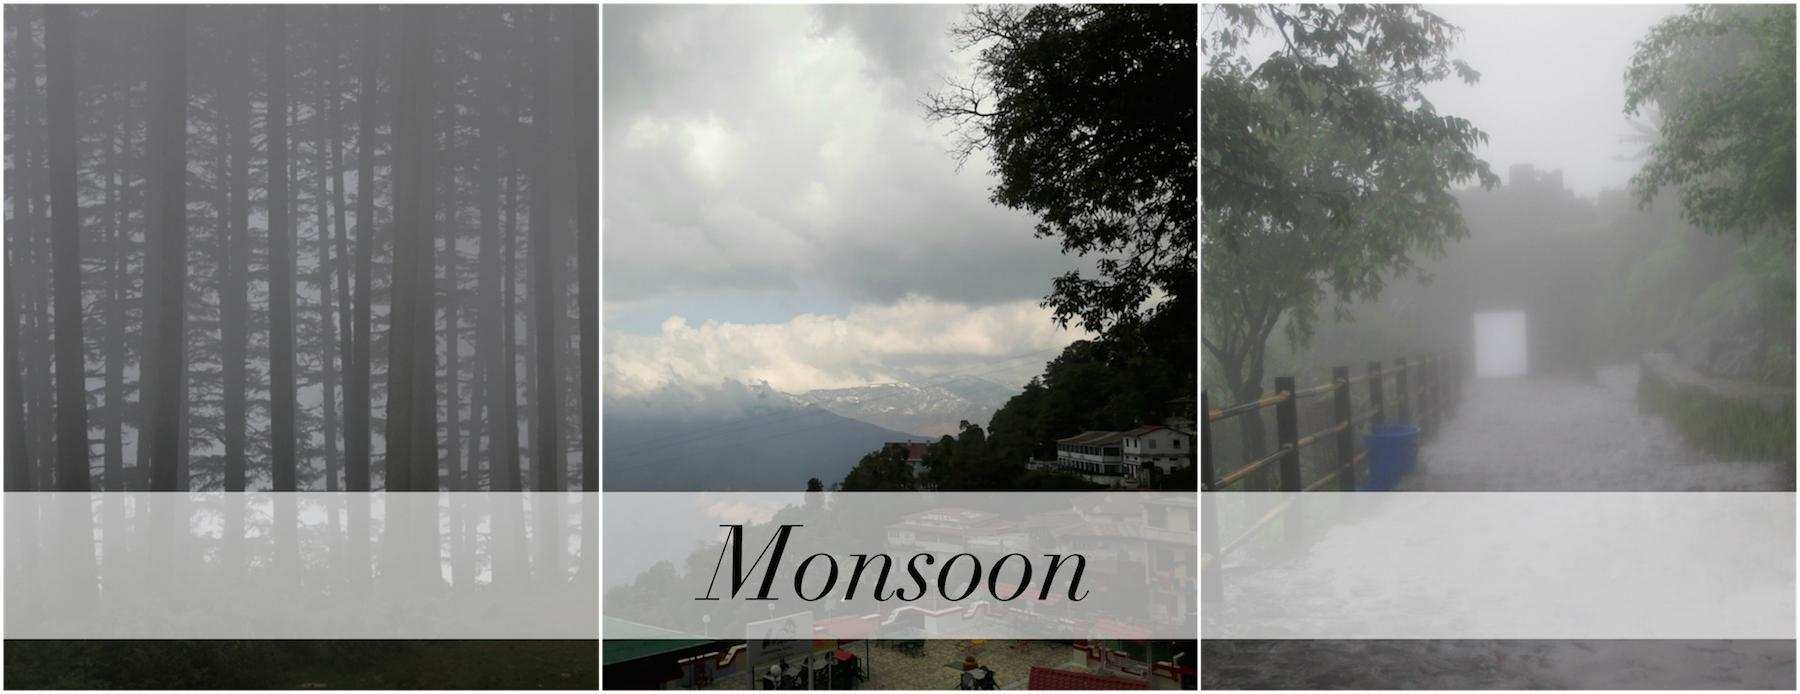 Mussoorie-in-monsoon-season.jpg